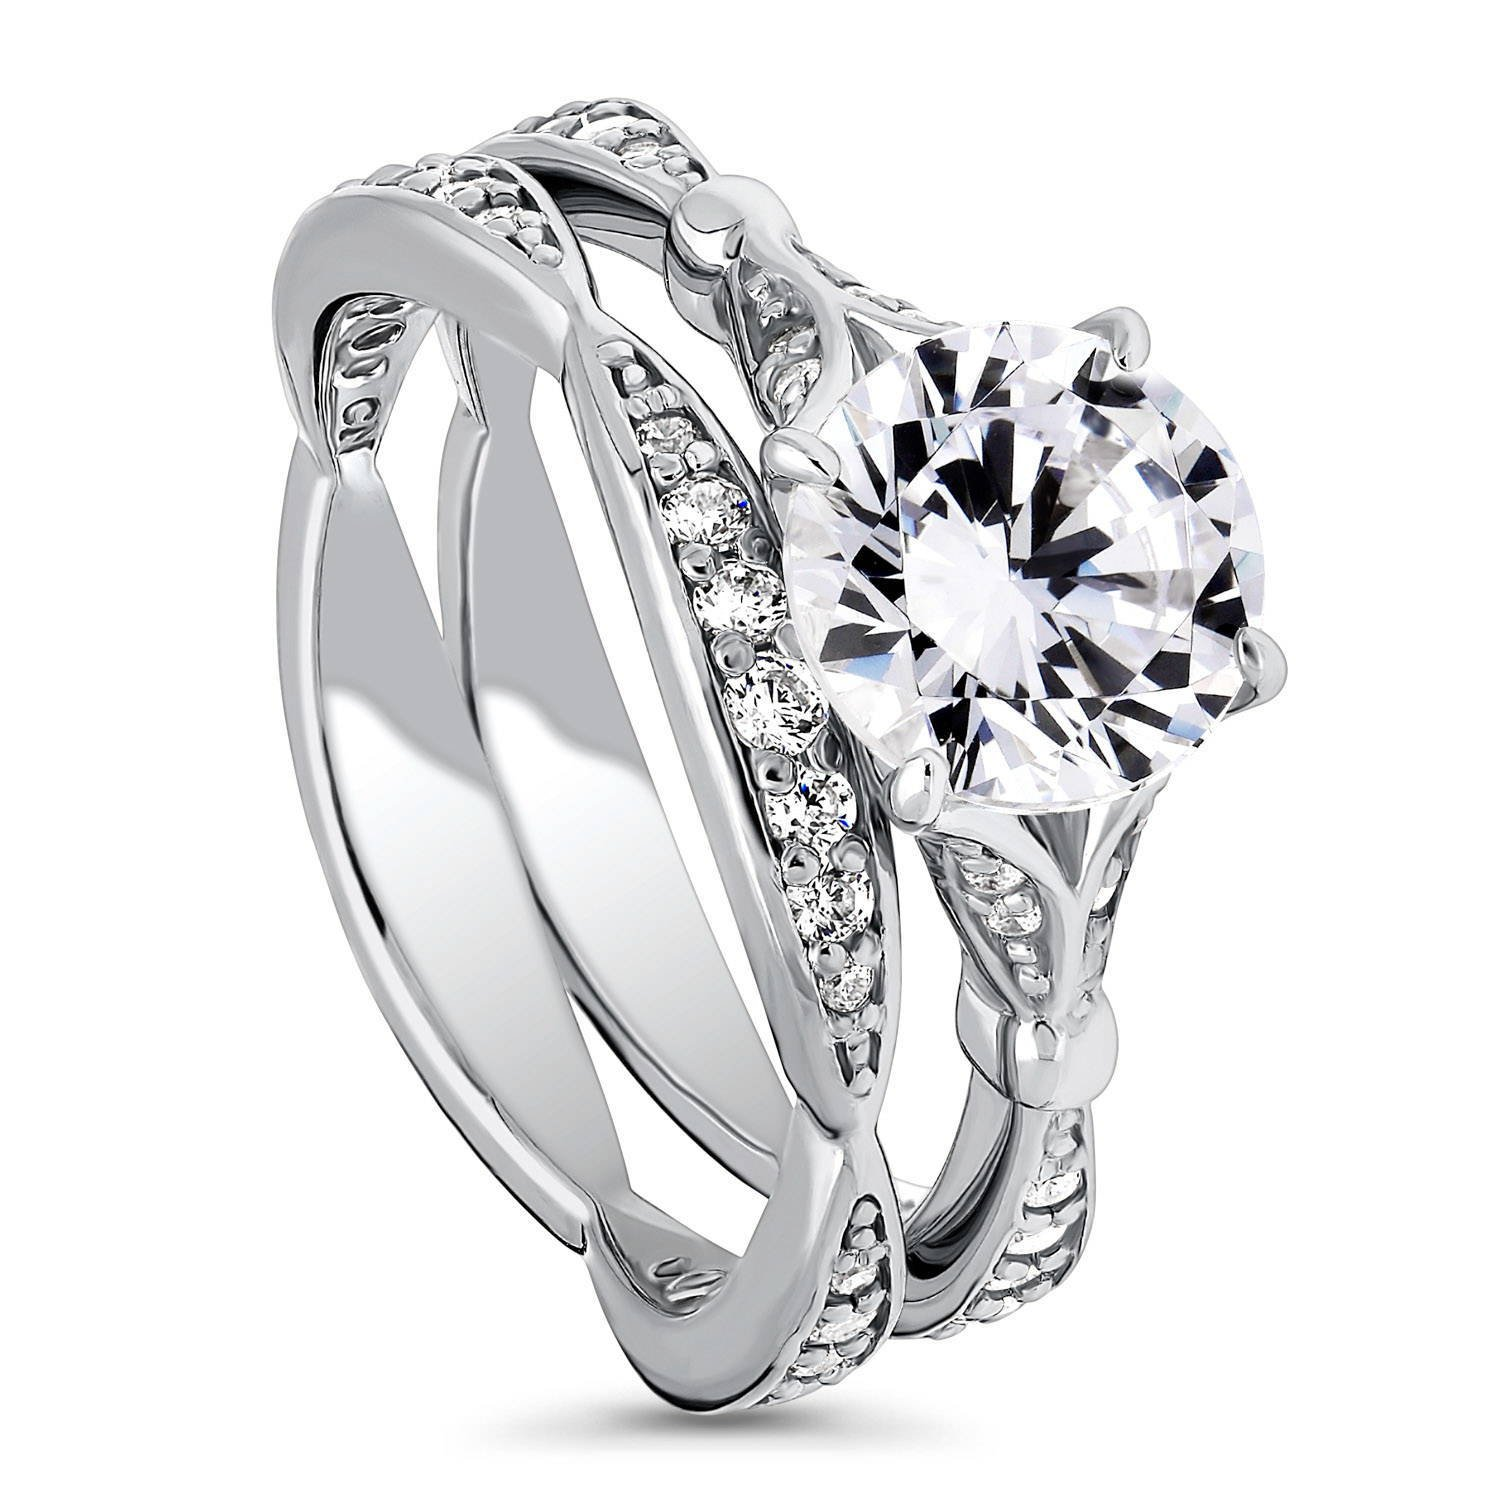 BERRICLE Rhodium Plated Sterling Silver Cubic Zirconia CZ Solitaire Engagement Ring Set Size 4